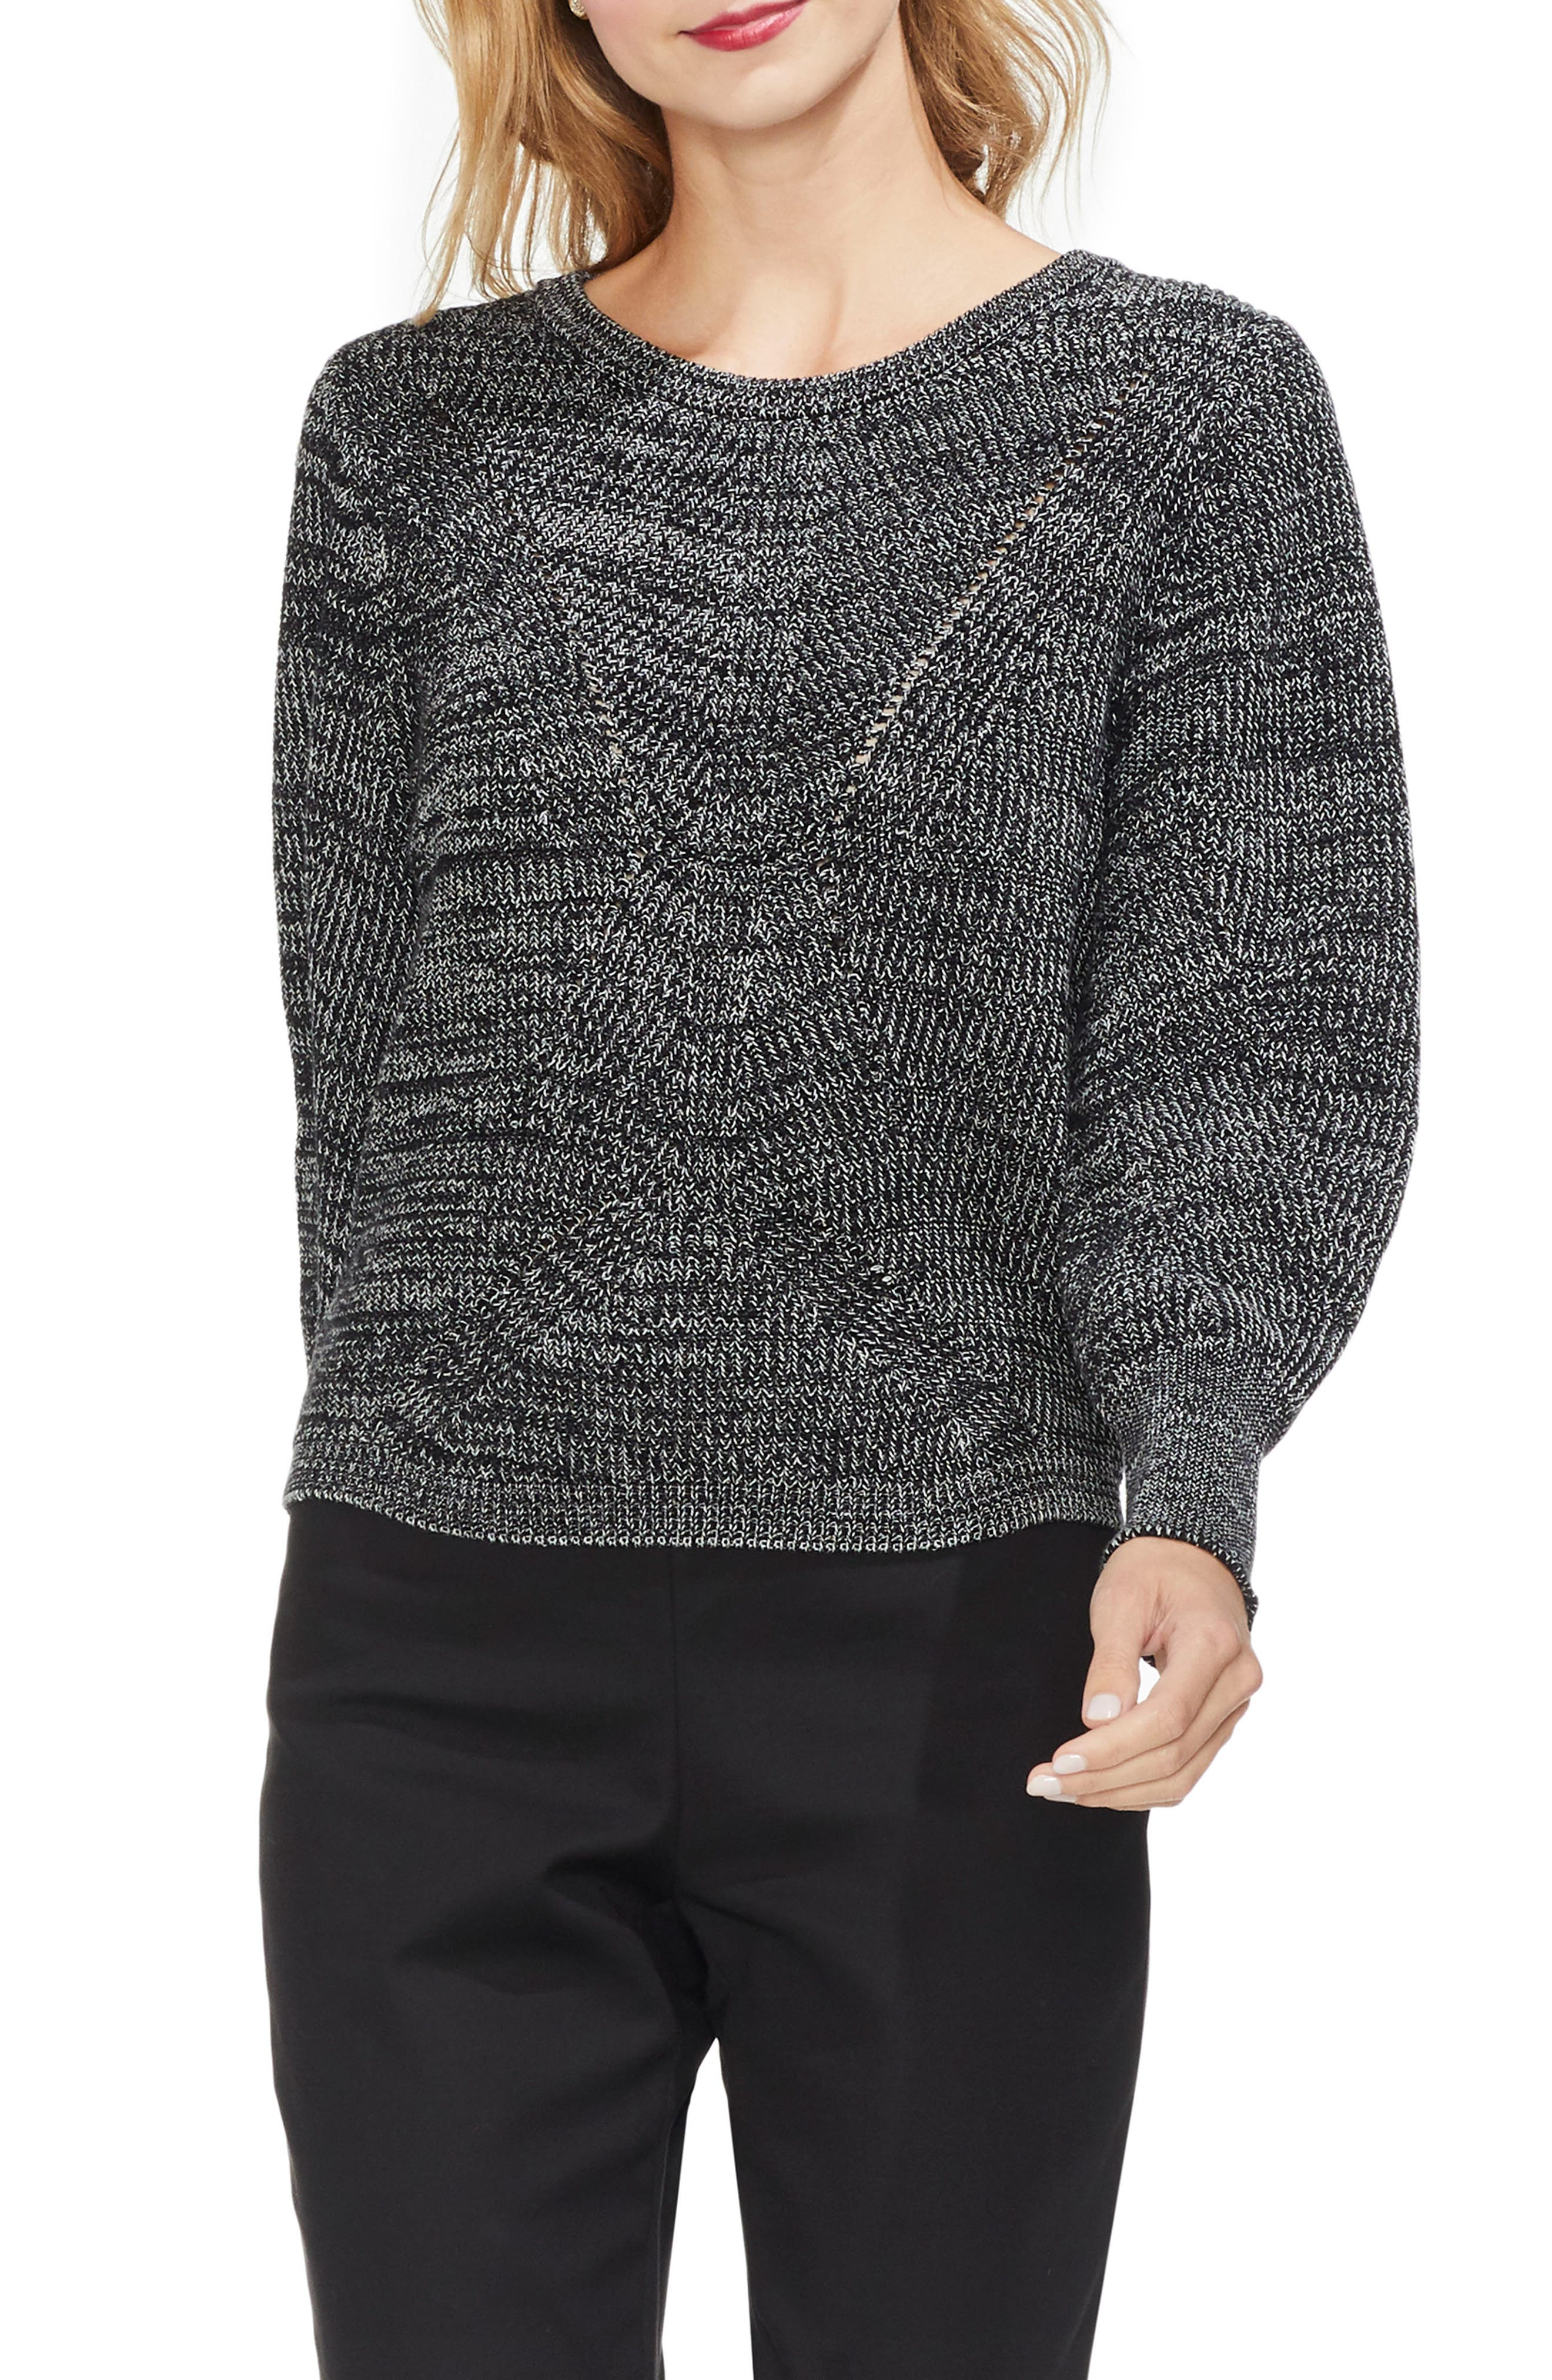 Lace-Up Back Sweater,                             Main thumbnail 1, color,                             BLACK MARLE